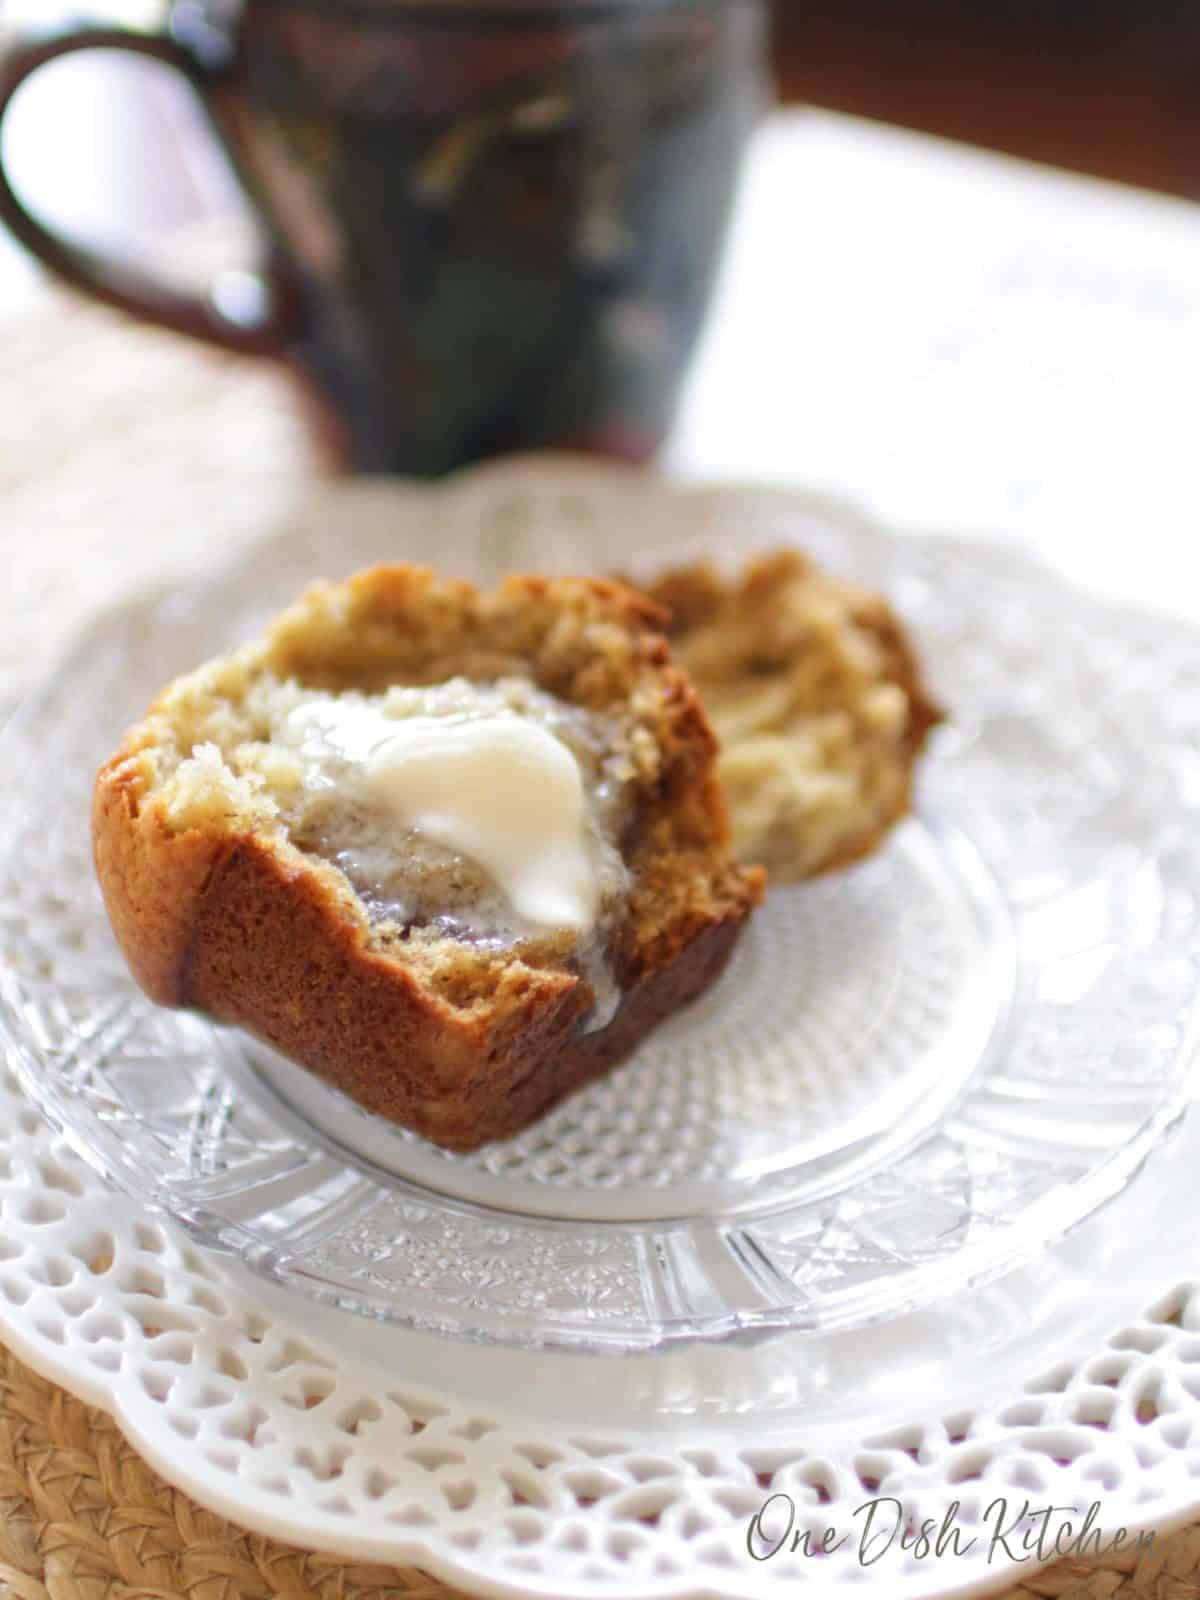 Butter melting on a muffin half and dripping onto the plate.